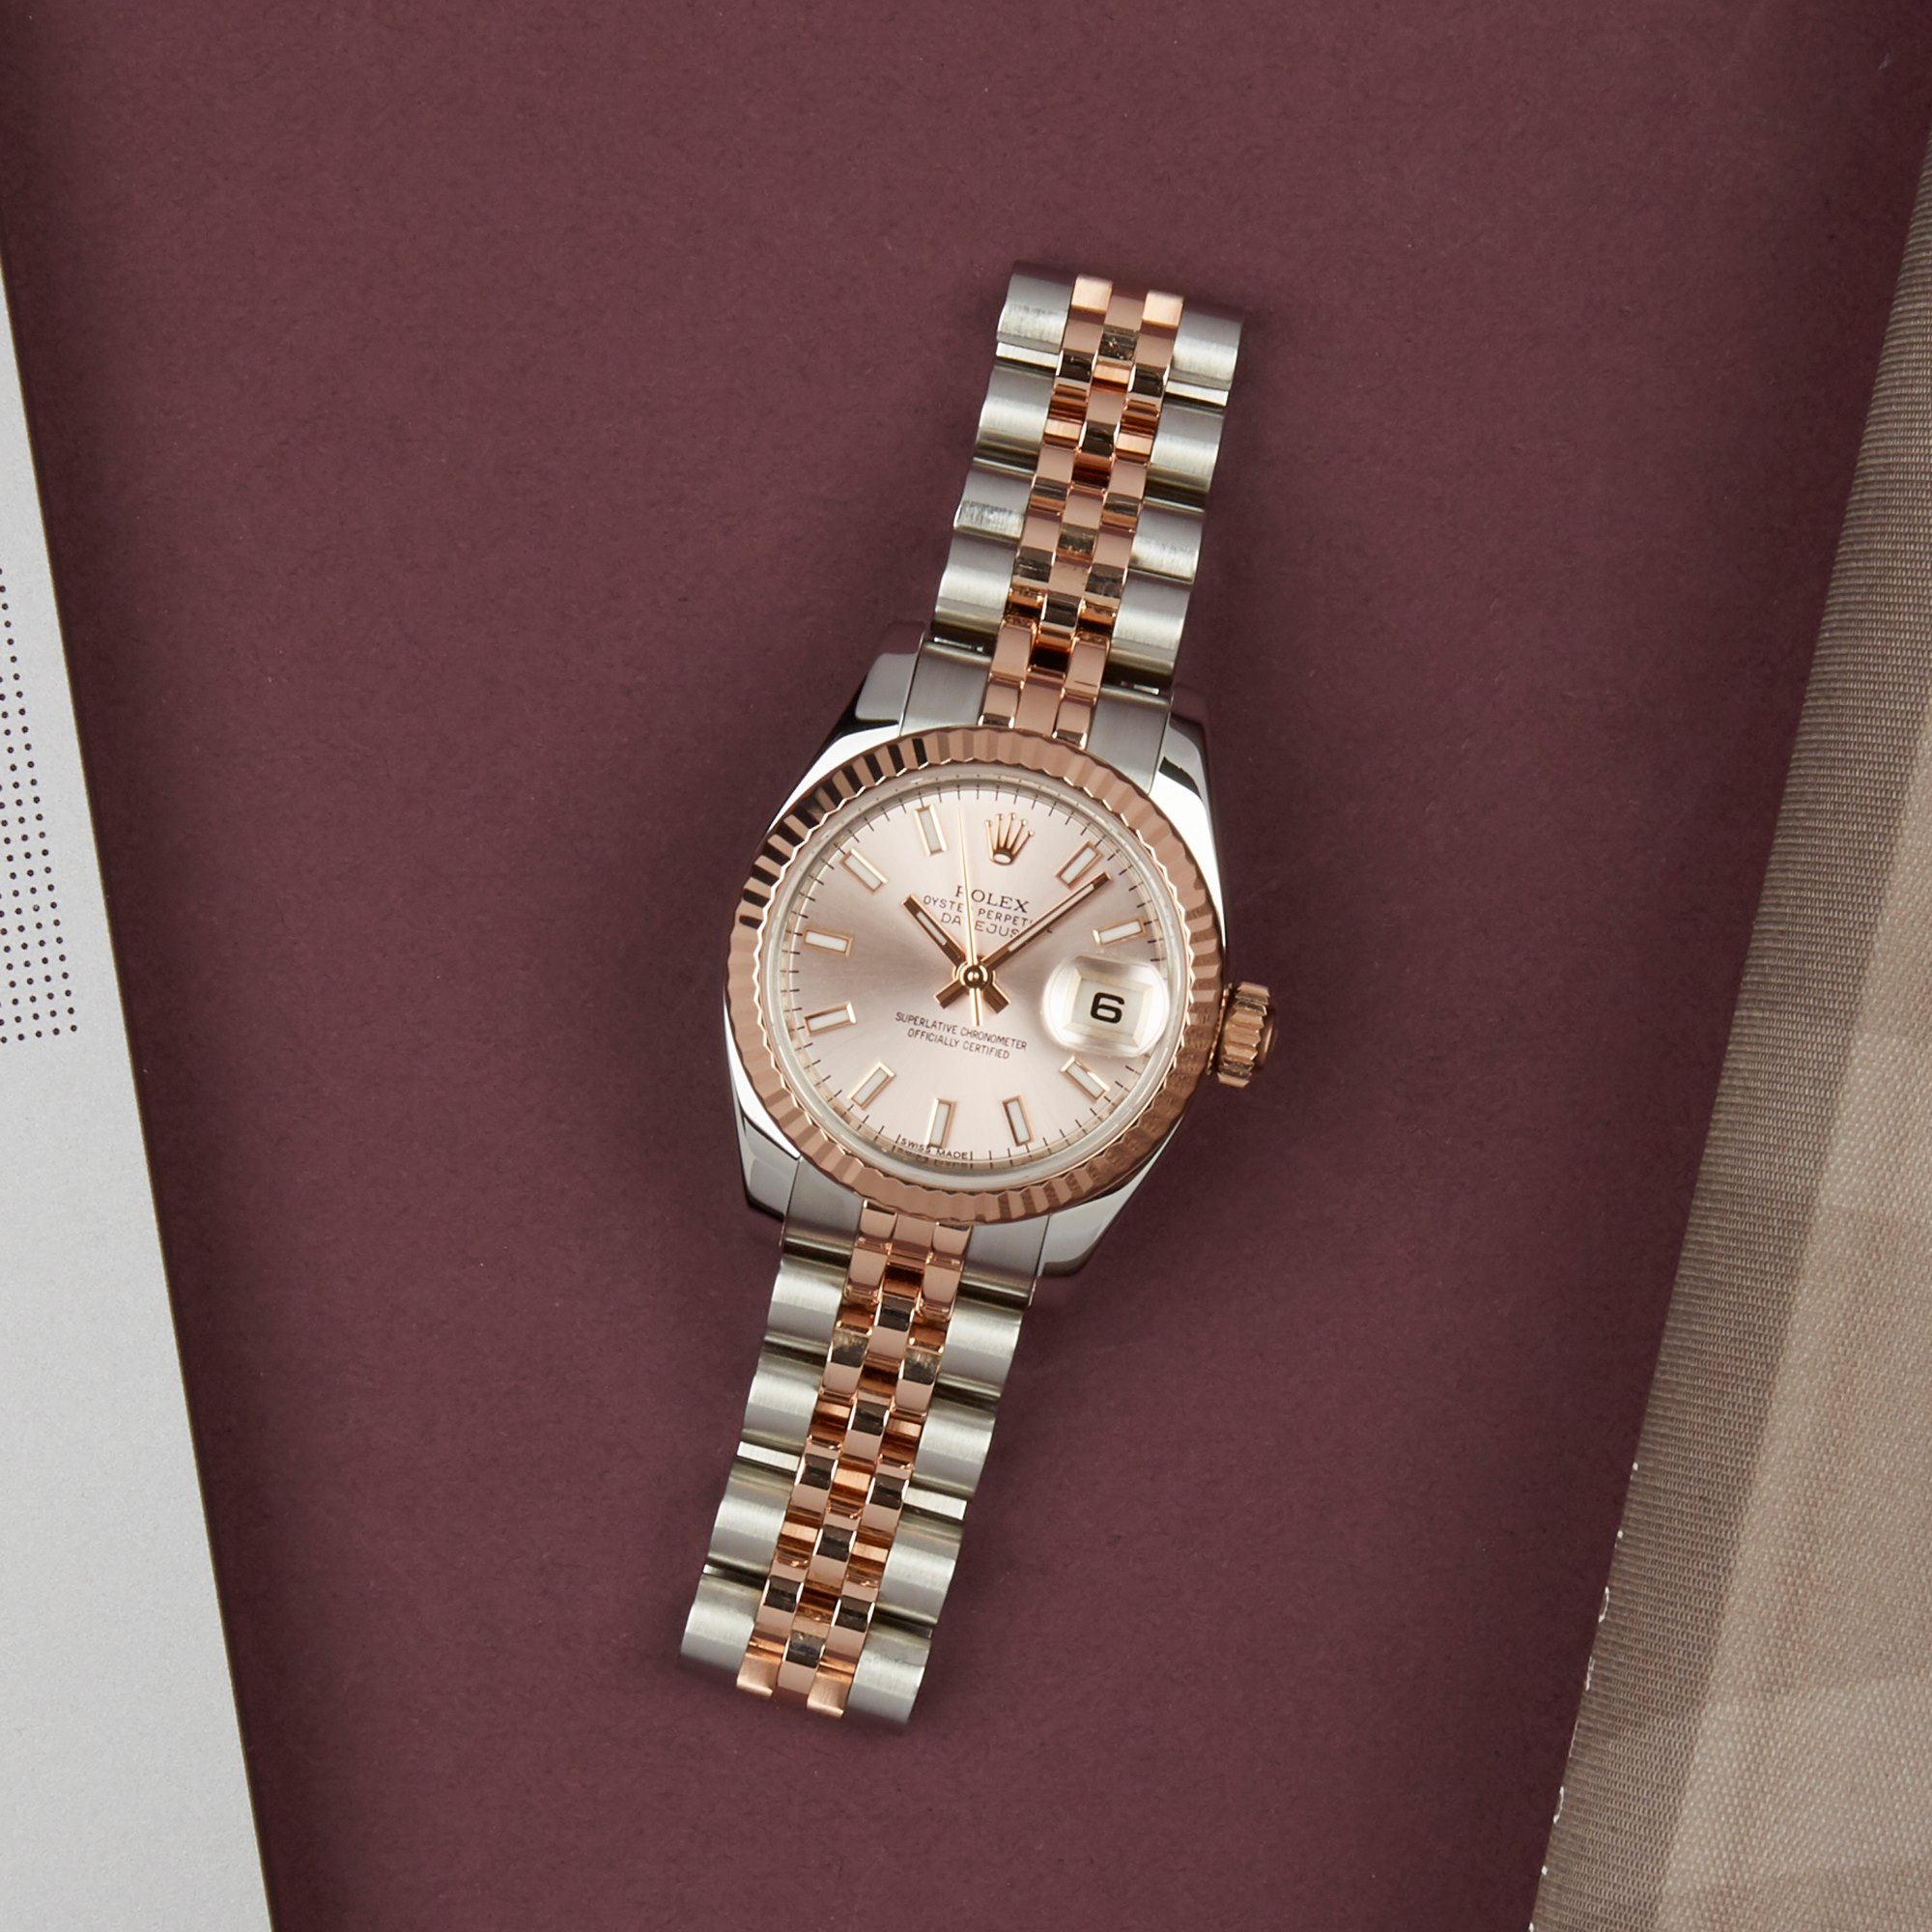 Rolex Datejust 26 179171 Ladies Rose Gold & Stainless Steel Watch - Image 6 of 10